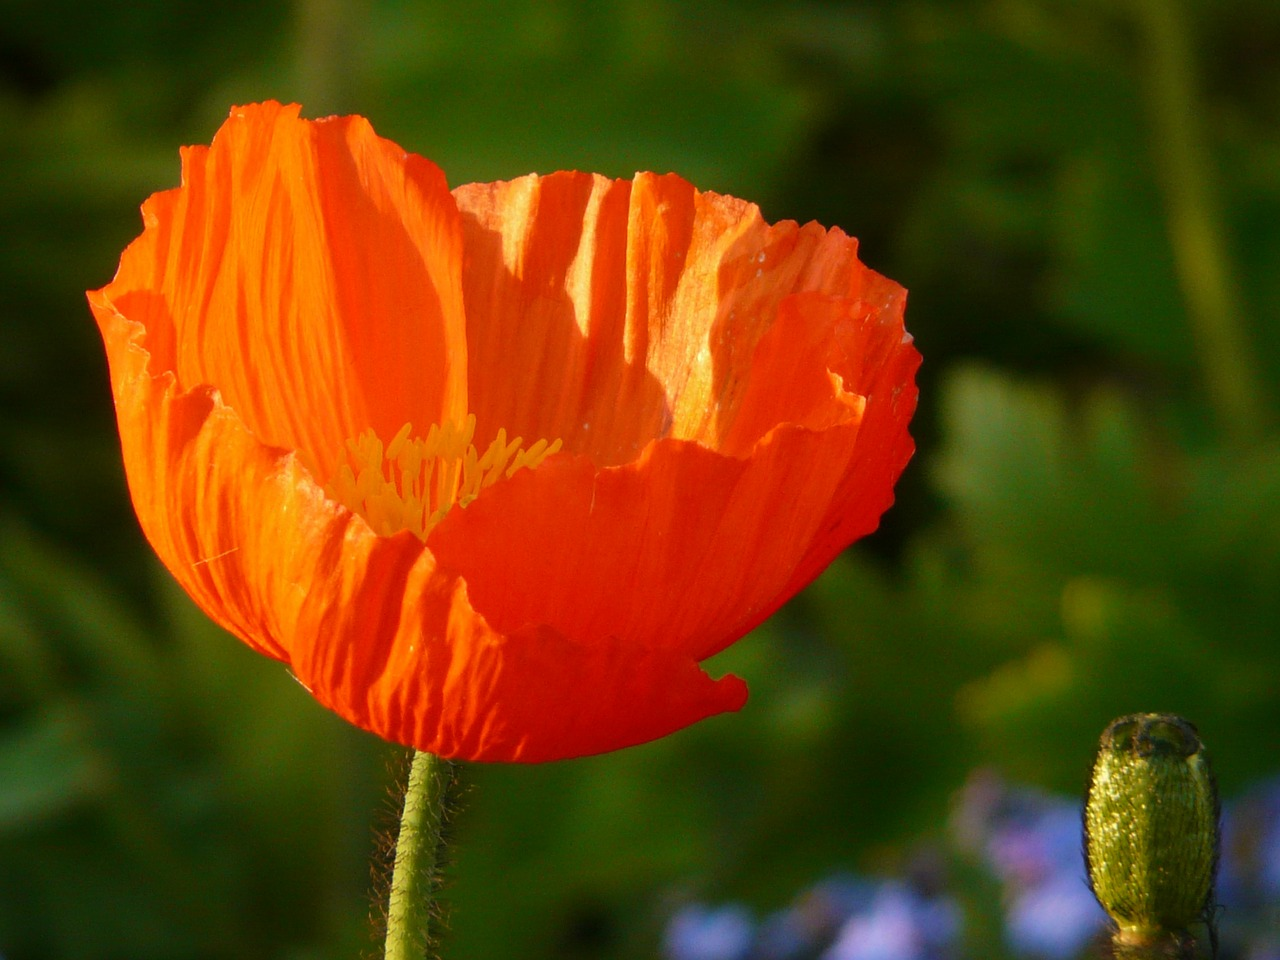 poppy klatschmohn medicinal plant free photo